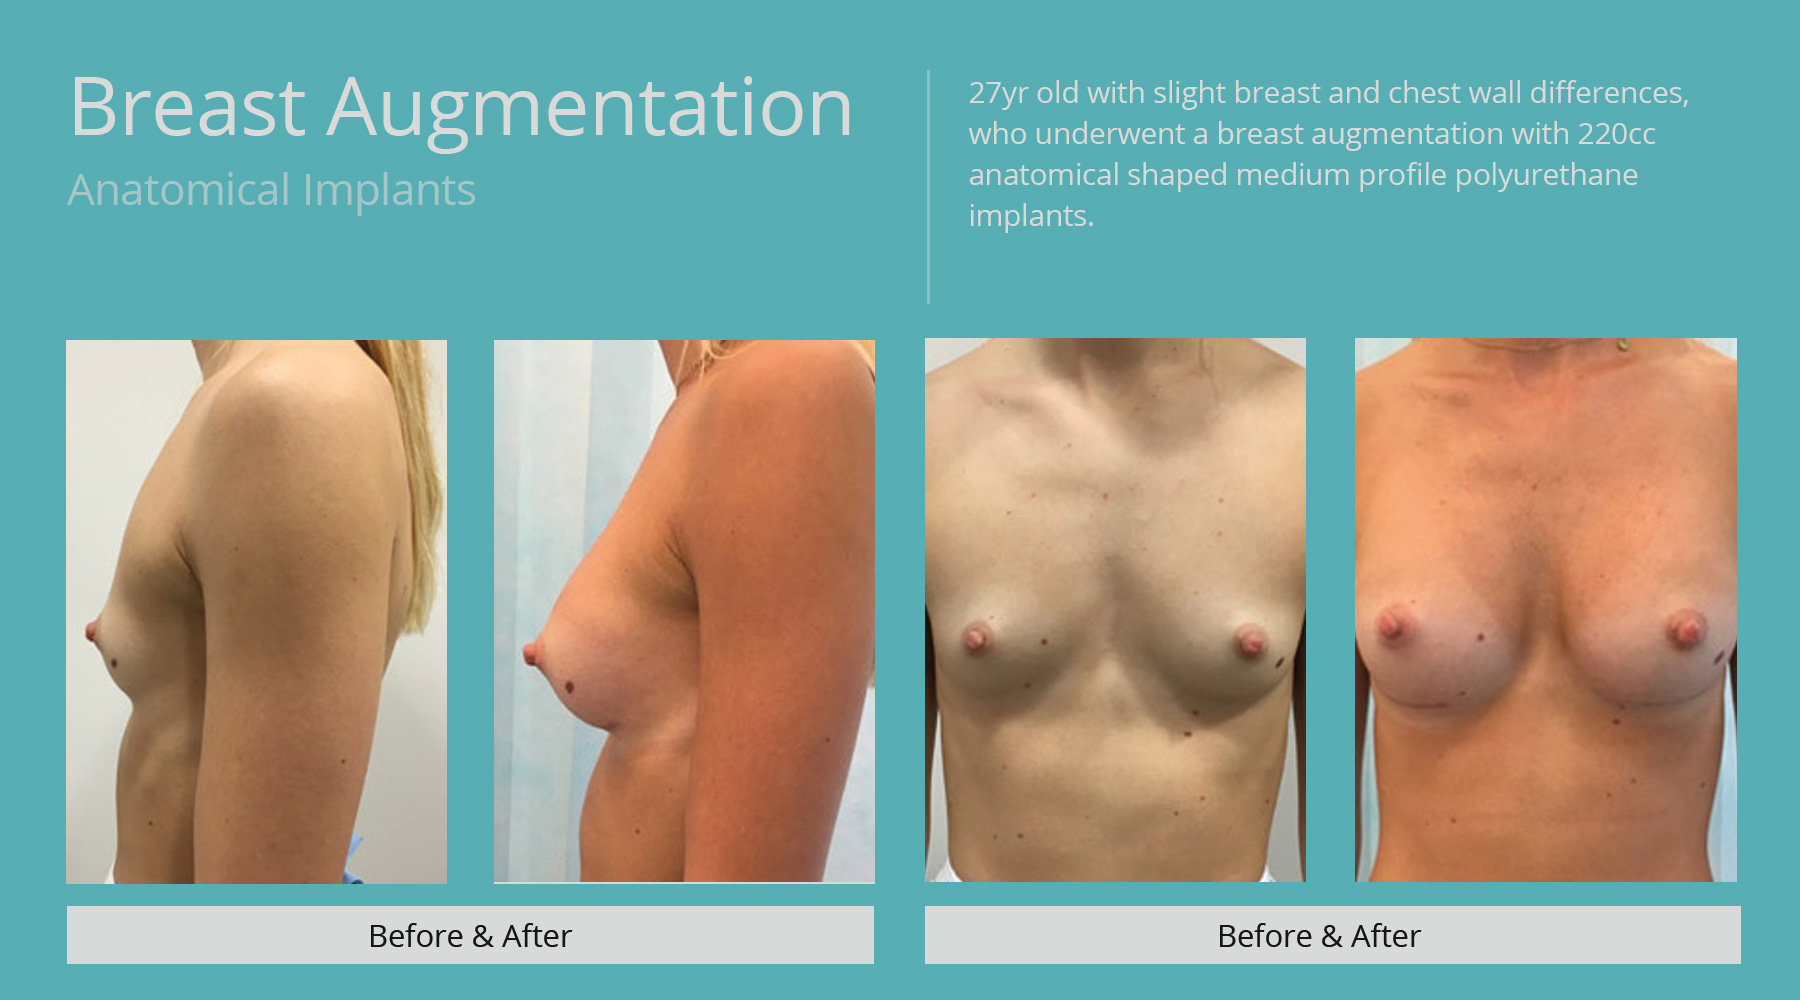 Breast-Augmentation-anatomical-3